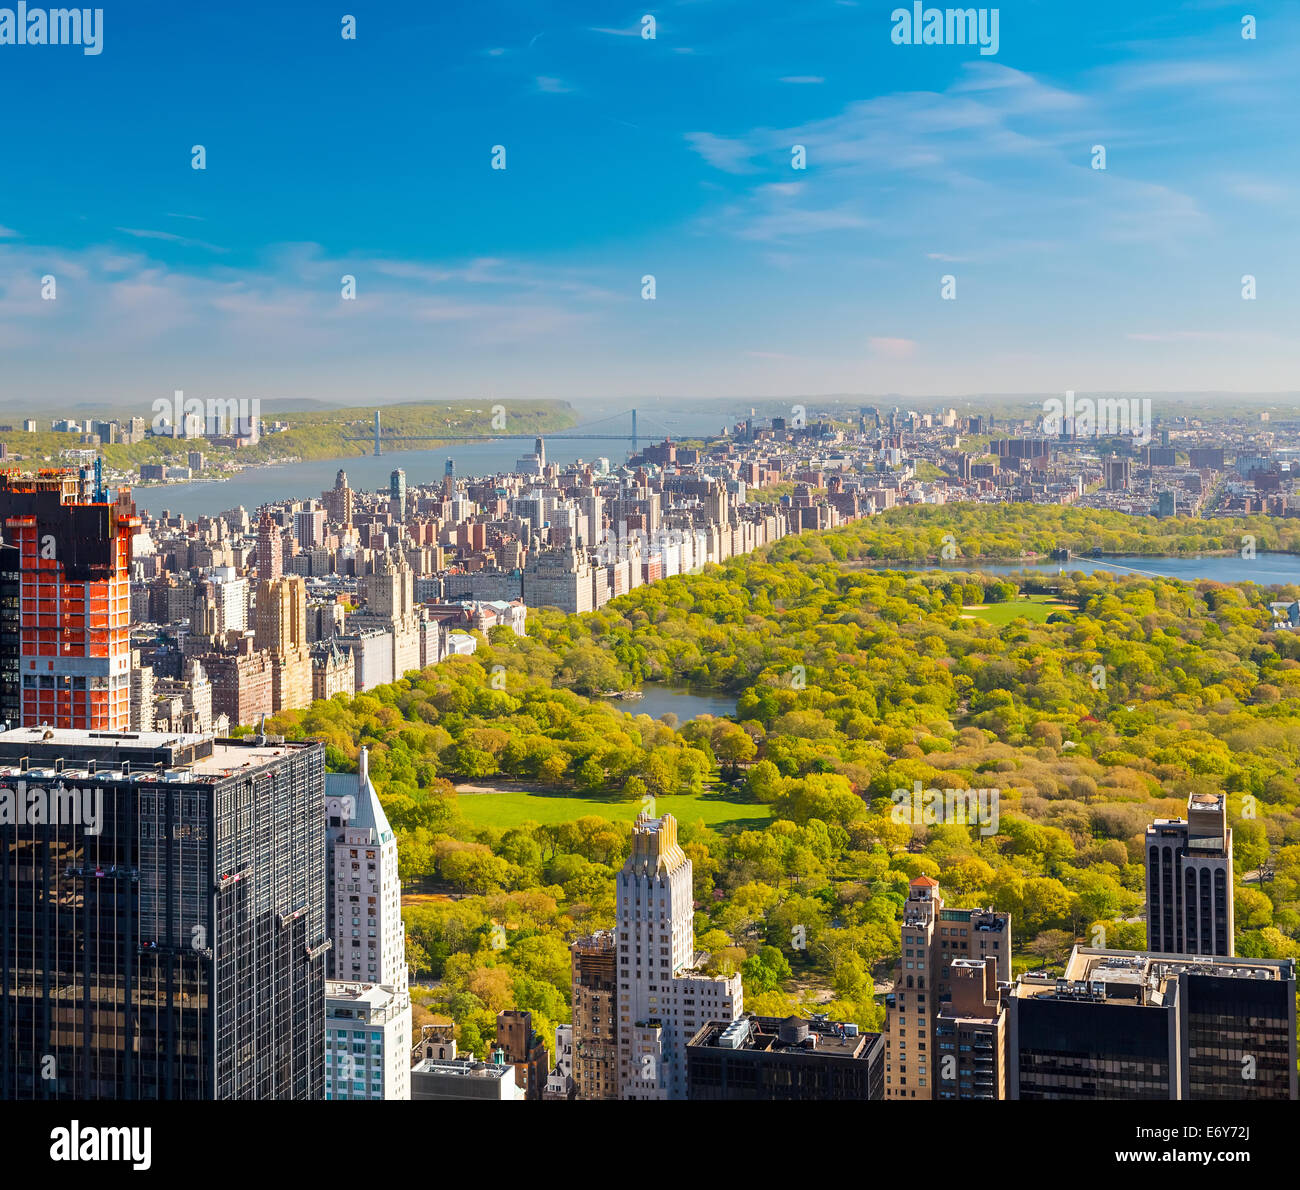 View on central park, New York - Stock Image